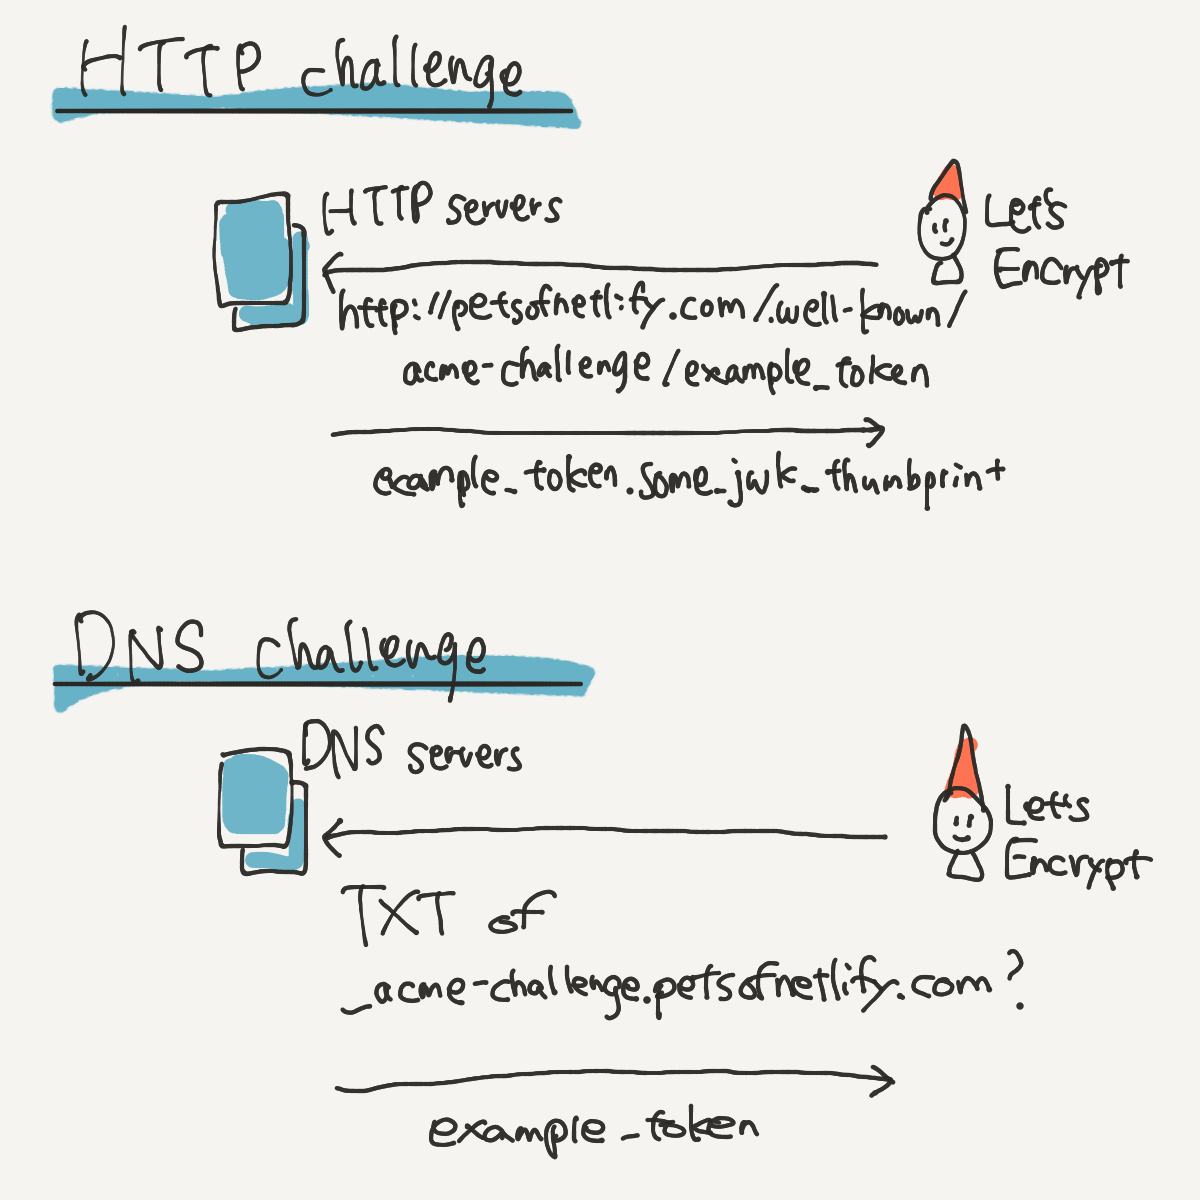 HTTP challenge and DNS challenge